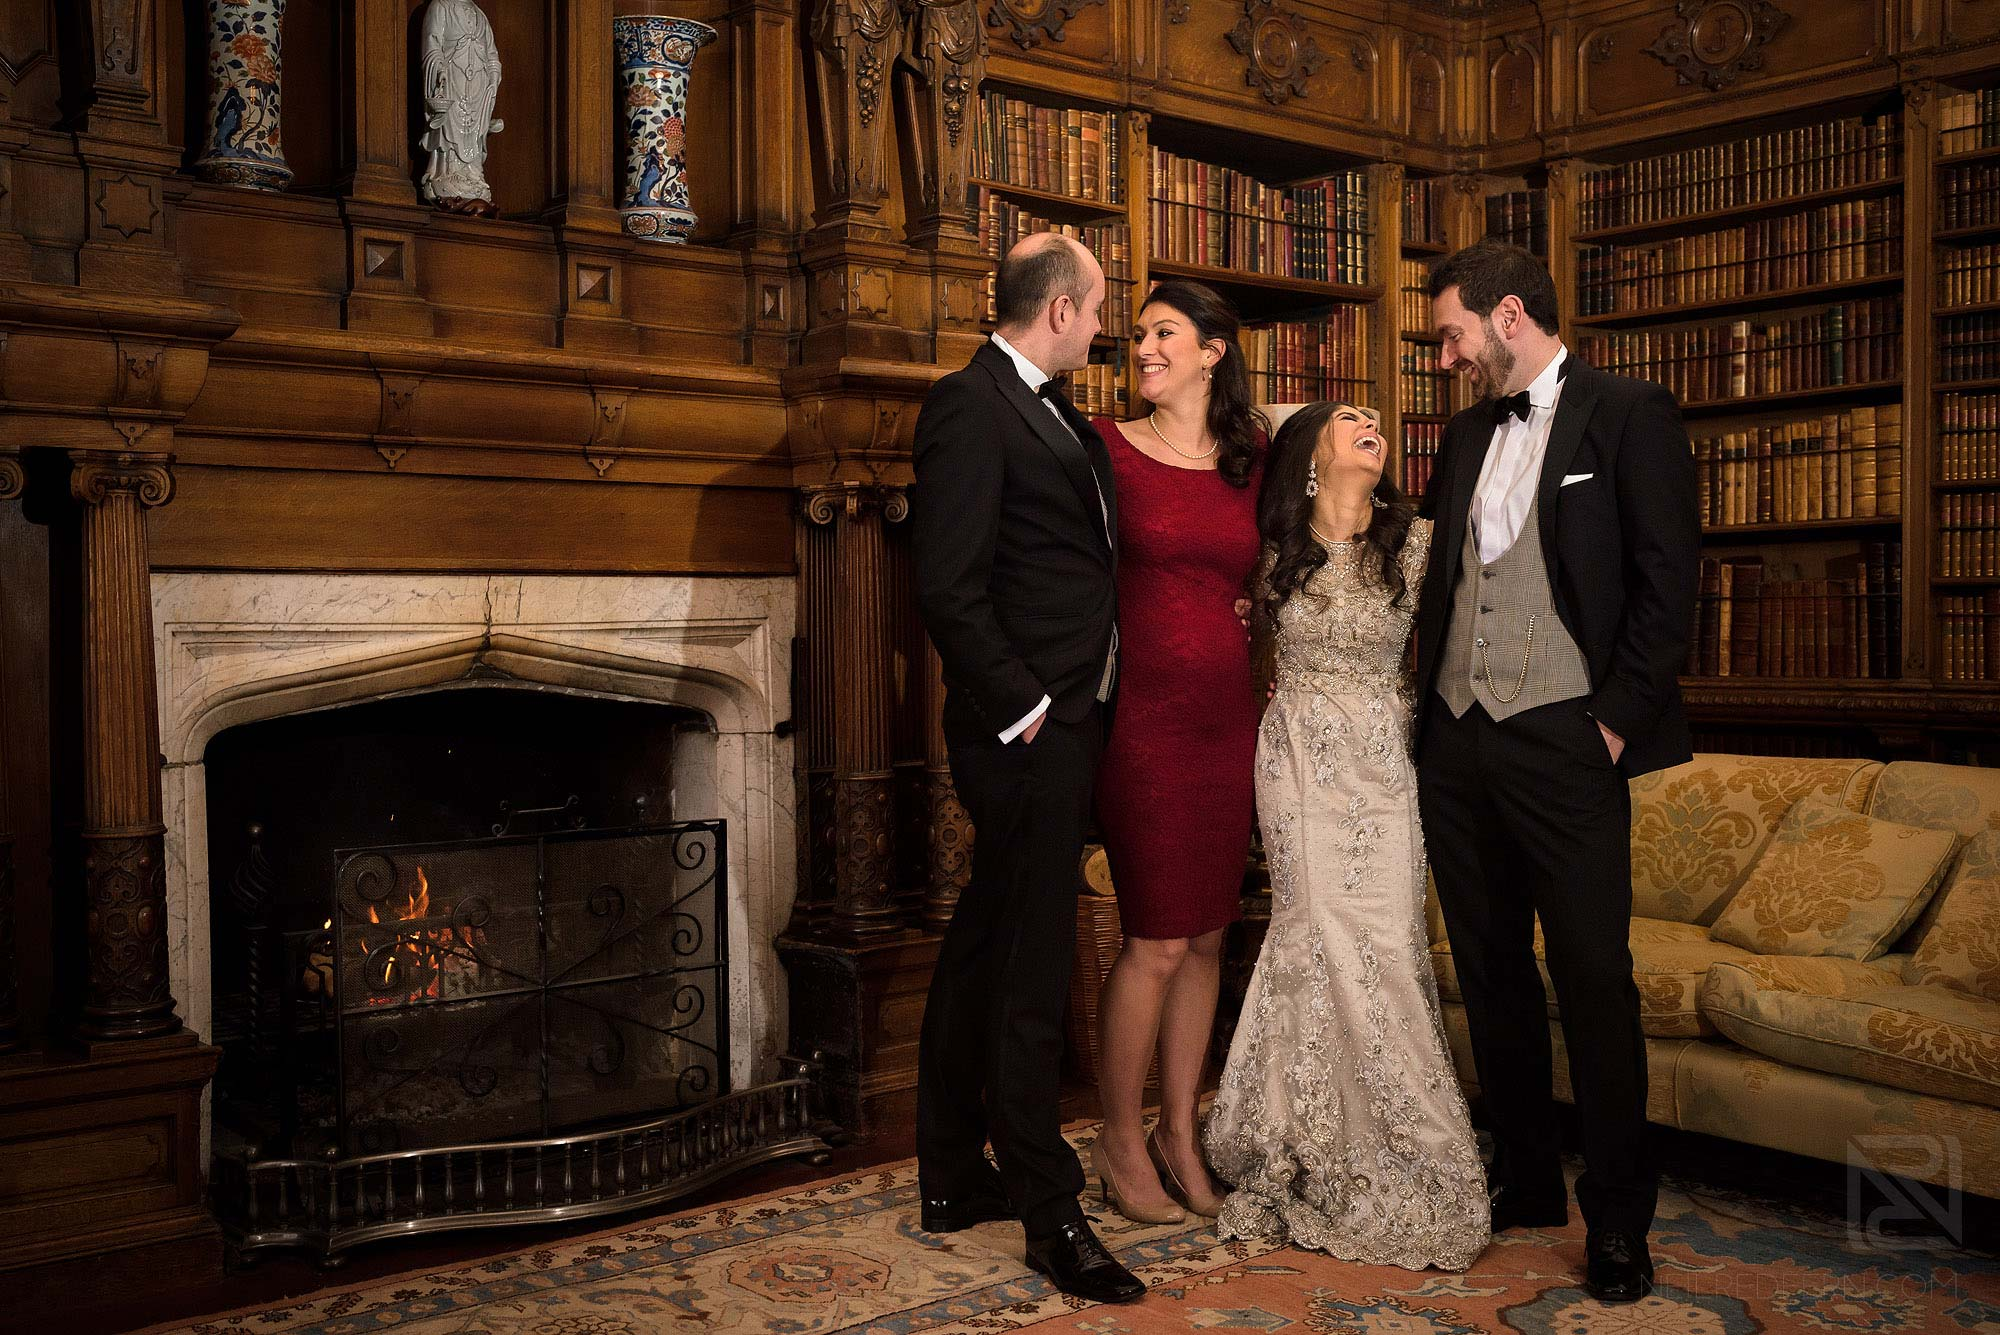 wedding group photograph in library at Arley Hall